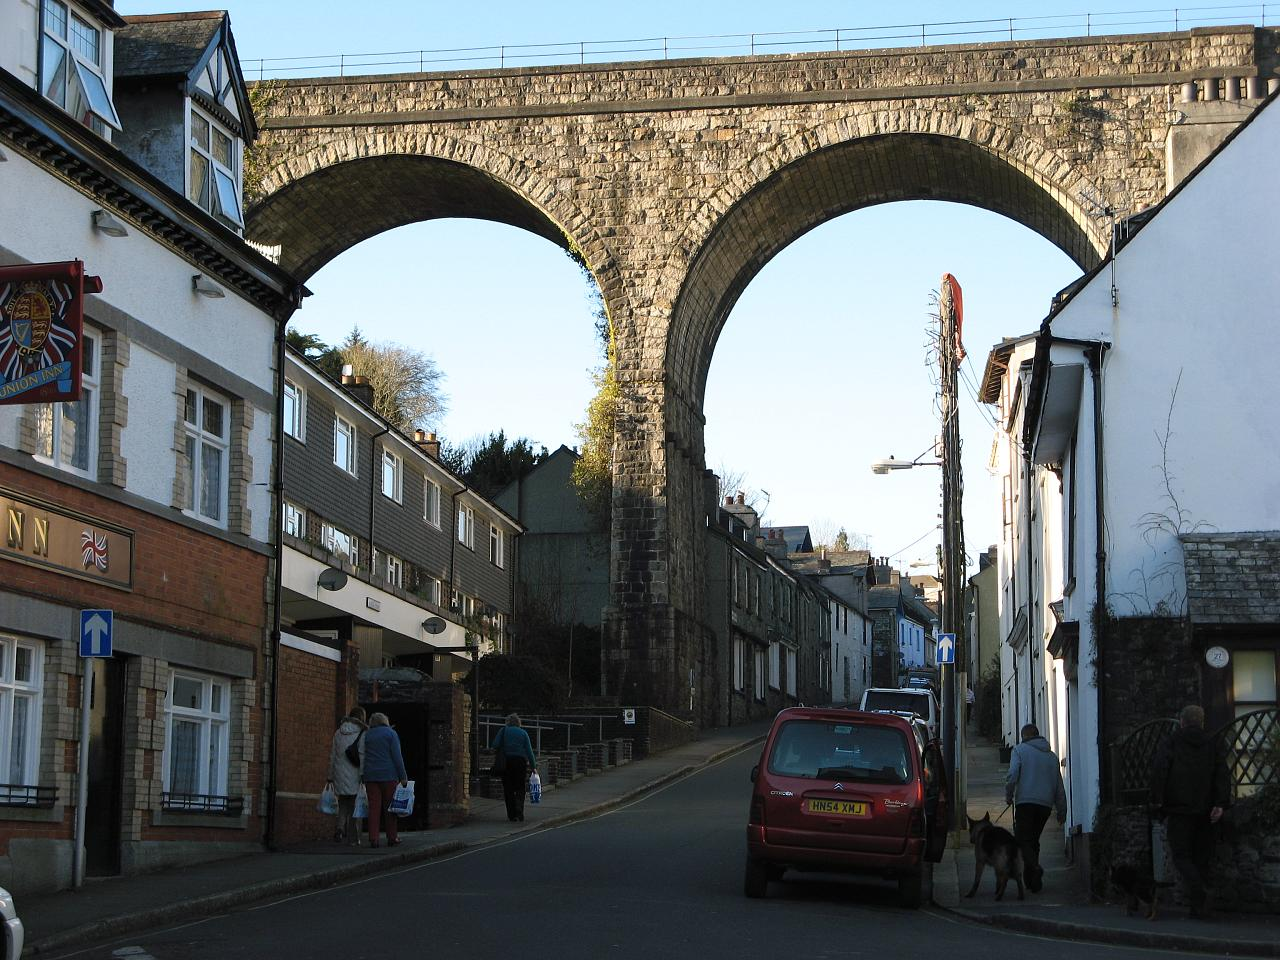 Tavistock by Phil Beard /></a><br>